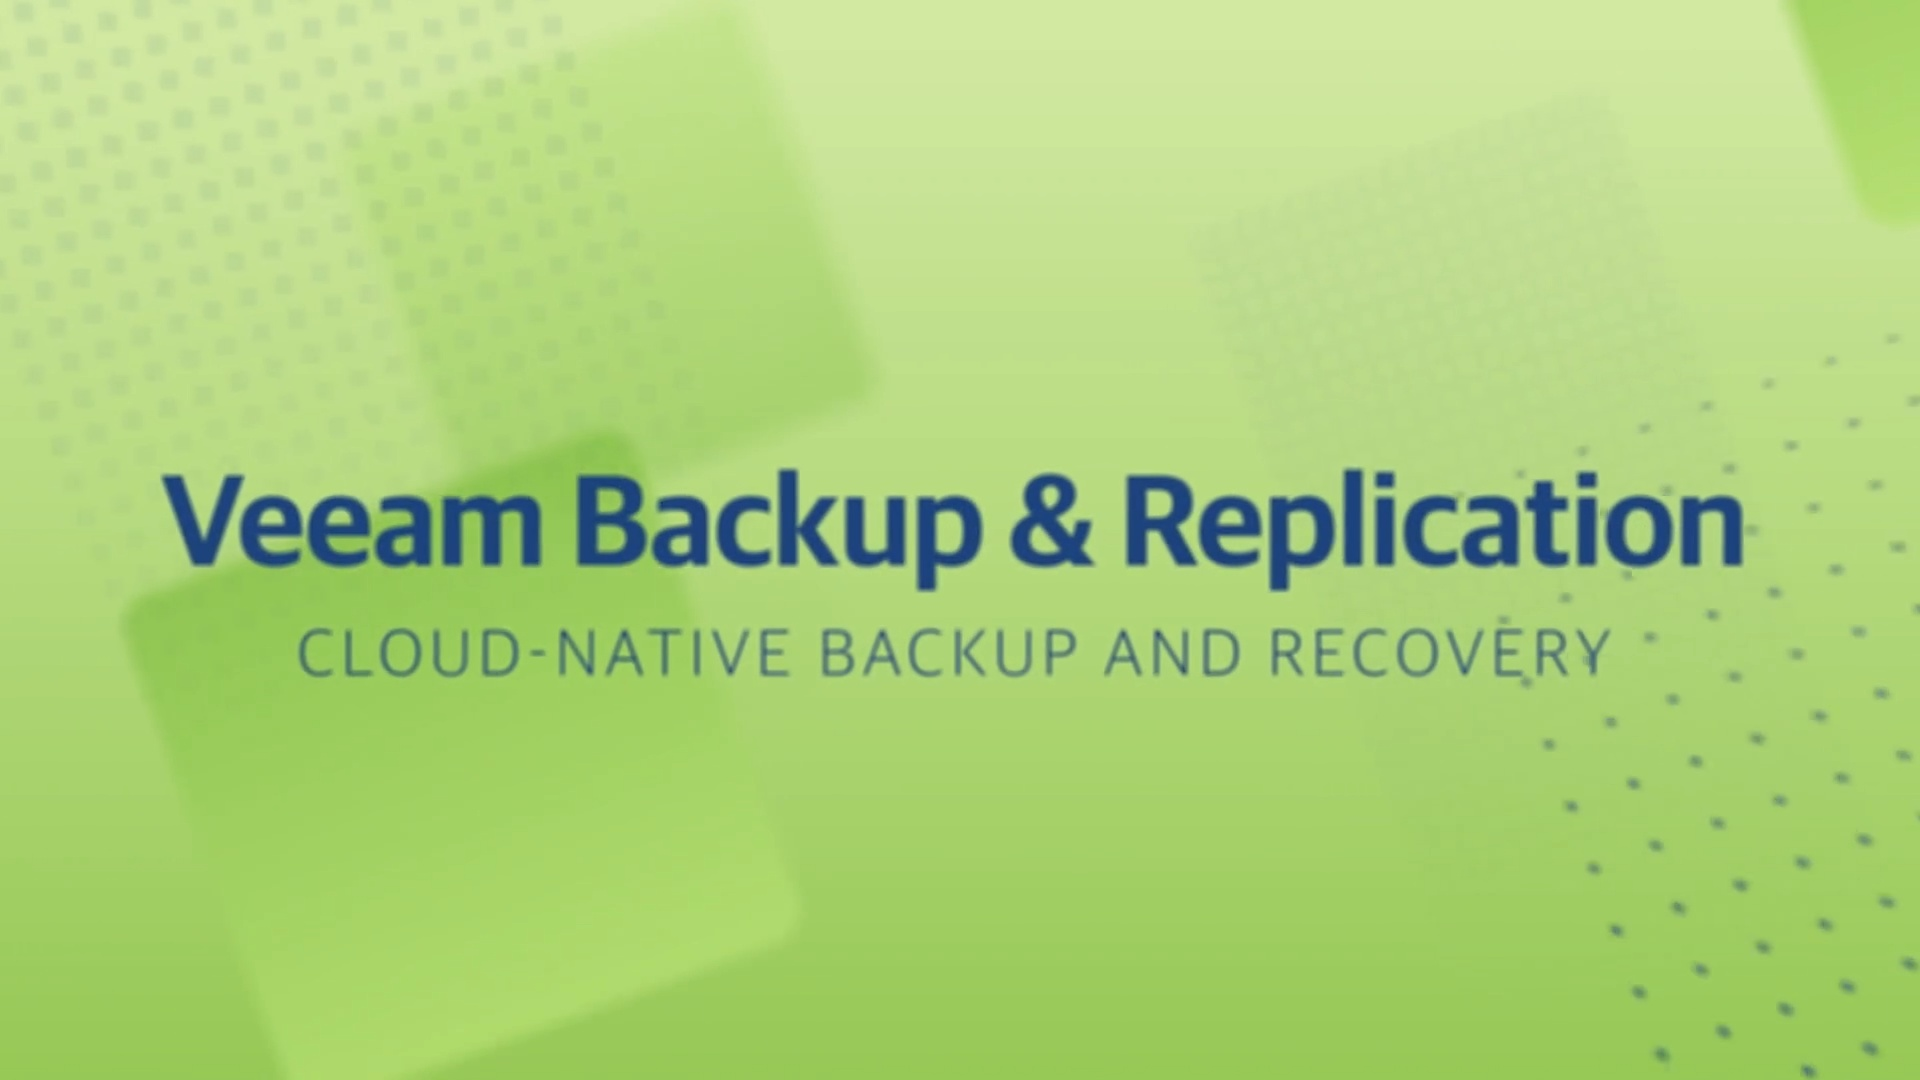 Product launch v11 - VBR - Cloud-Native Backup & Recovery